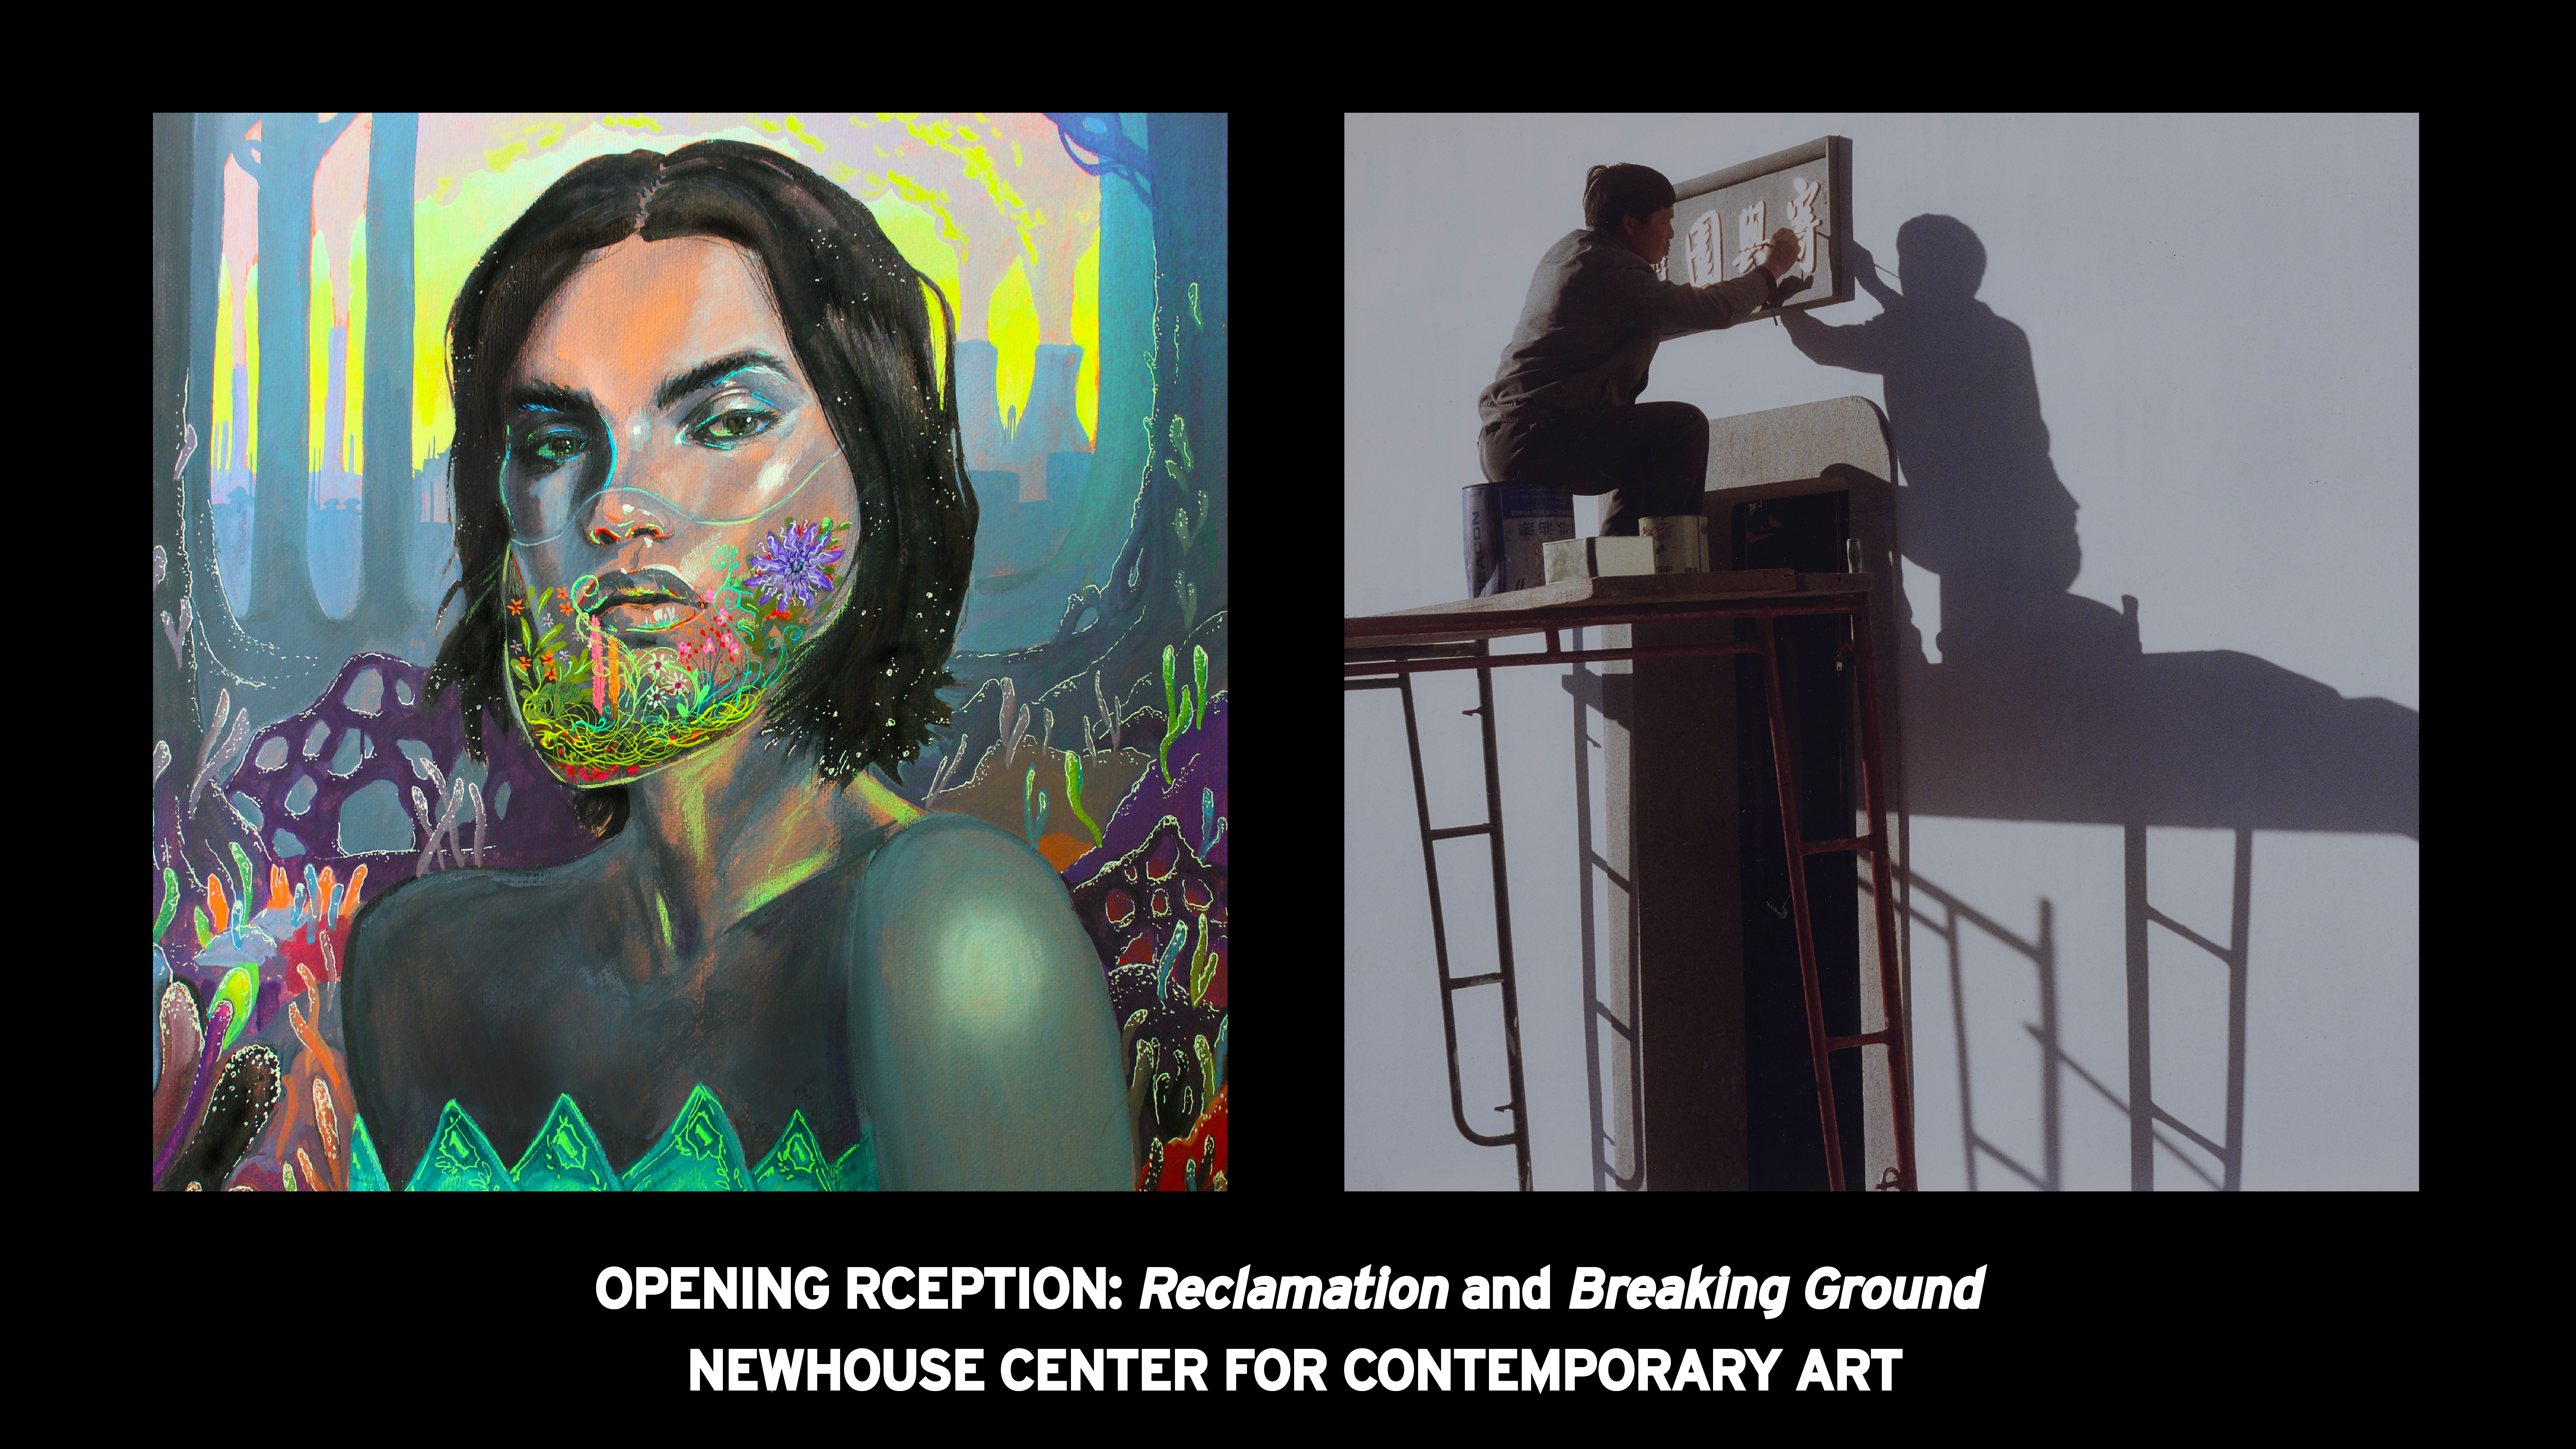 Opening Reception for Reclamation and Breaking Ground